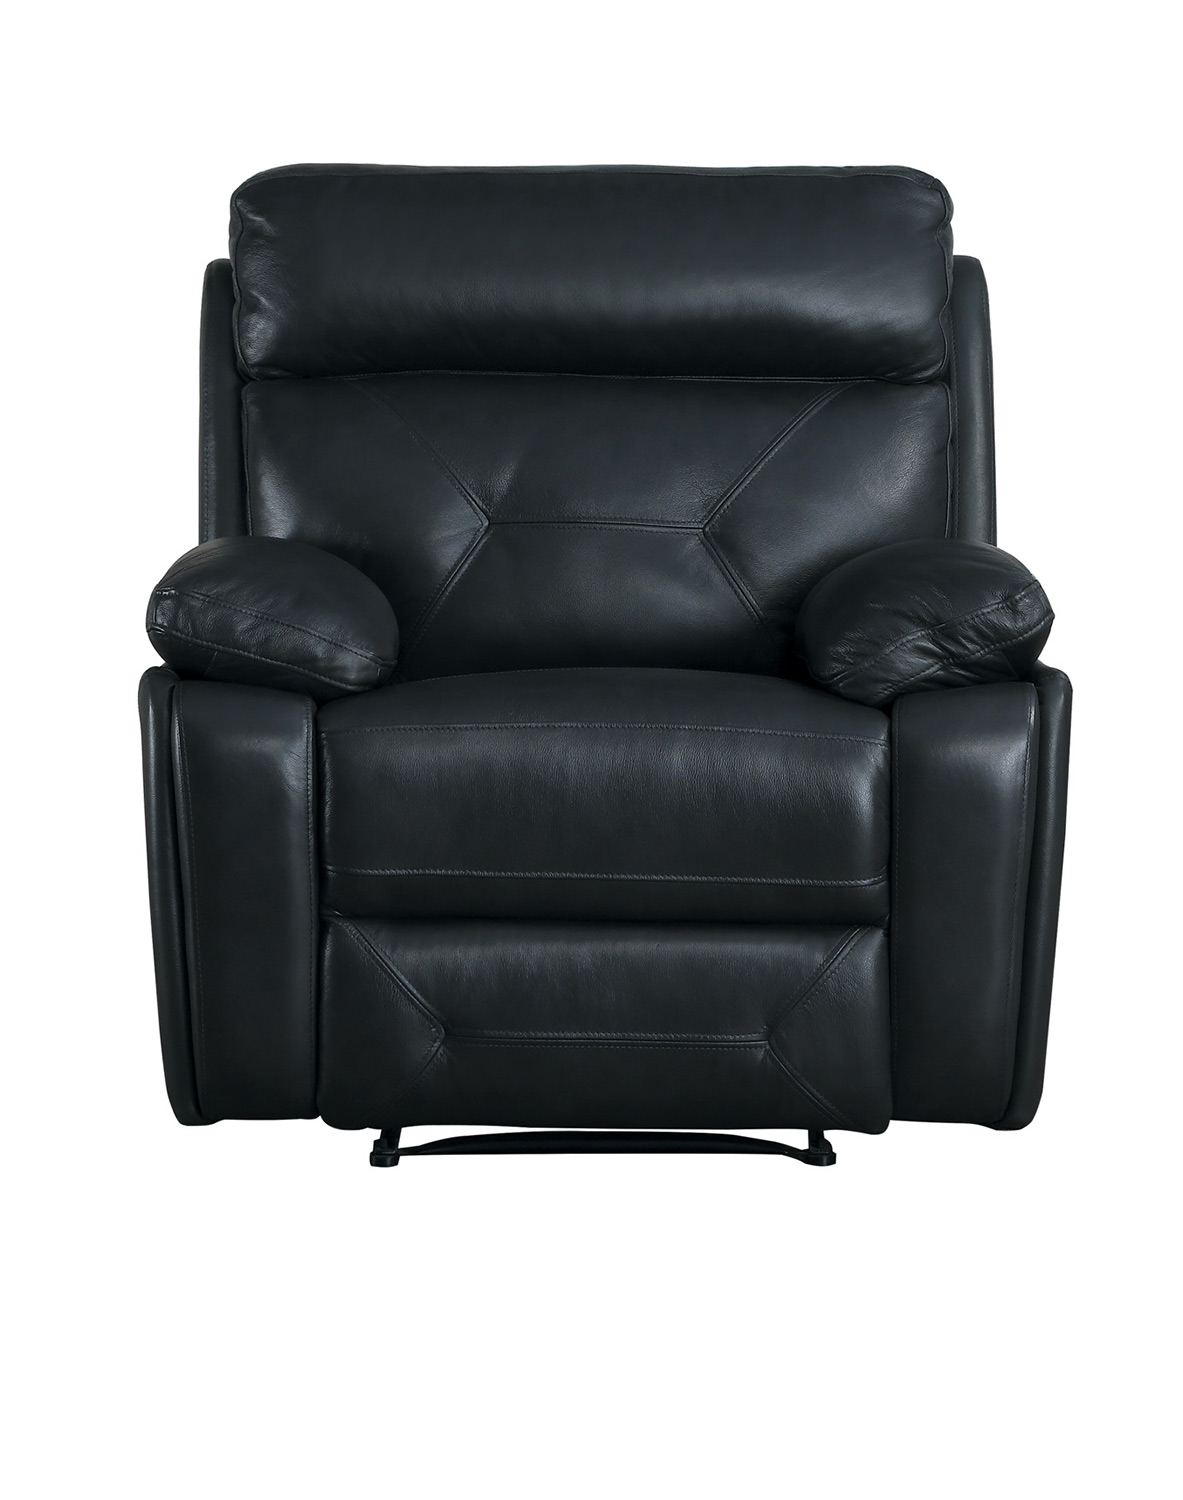 Homelegance Resonance Reclining Chair - Dark Gray